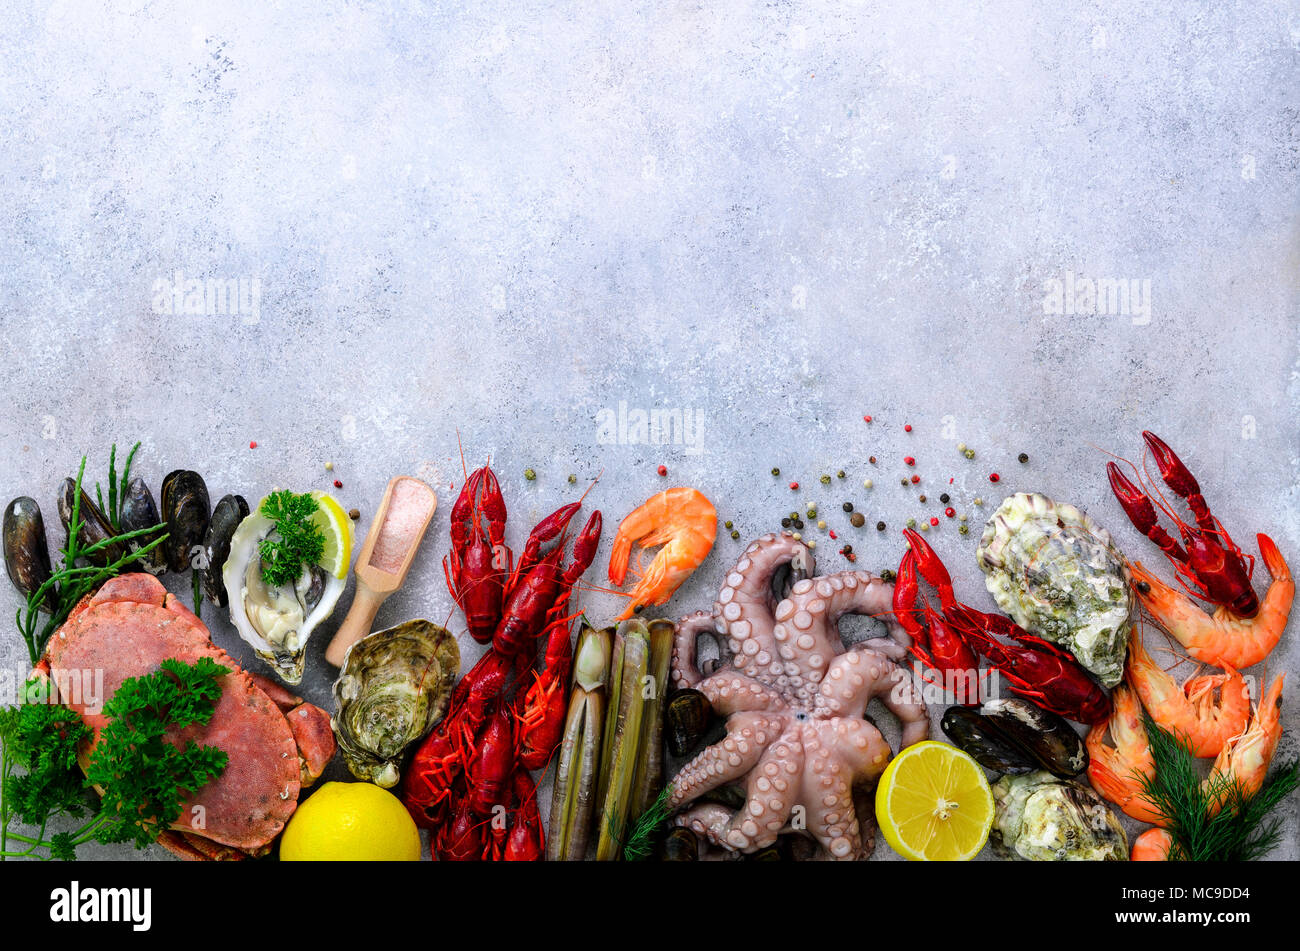 Seafood background - fresh mussels, molluscs, oysters, octopus, razor shells, shrimps, crab ...